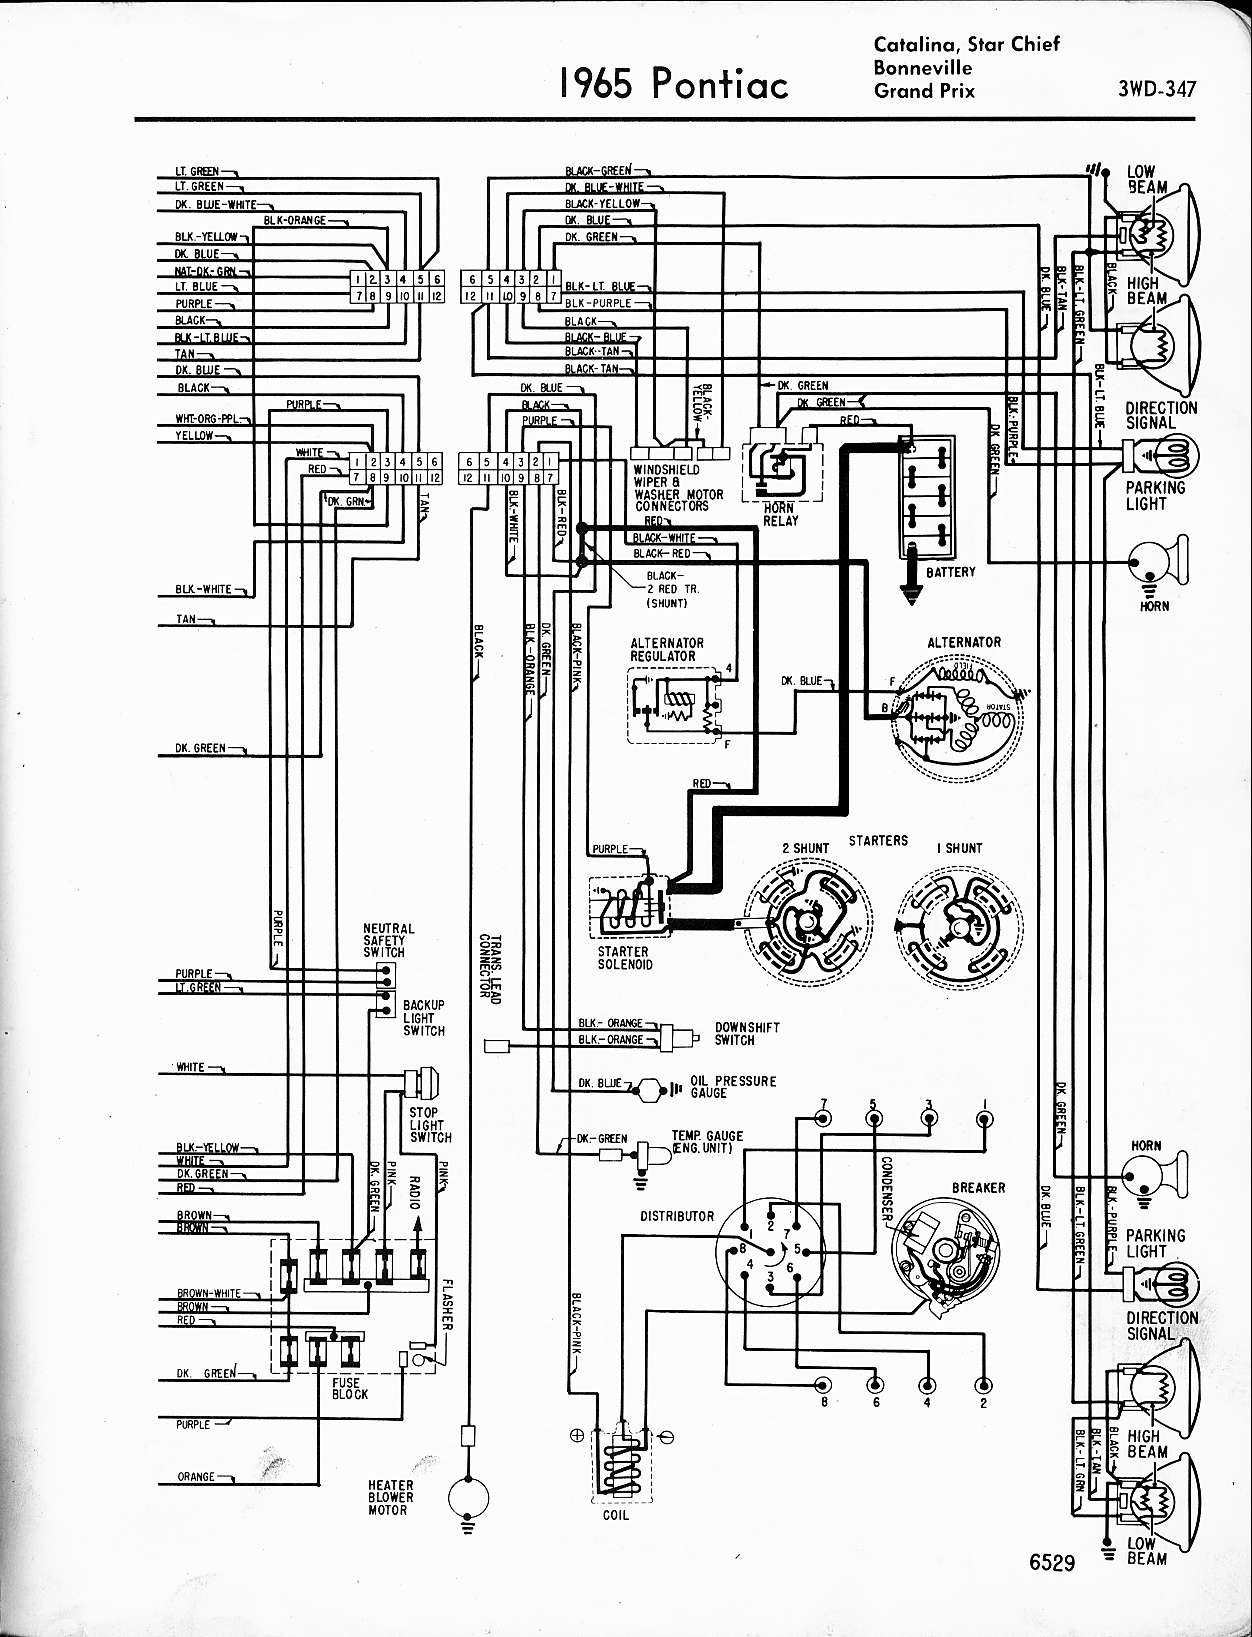 Phenomenal Pontiac Vacuum Diagram Wiring Library Wiring Digital Resources Sapredefiancerspsorg